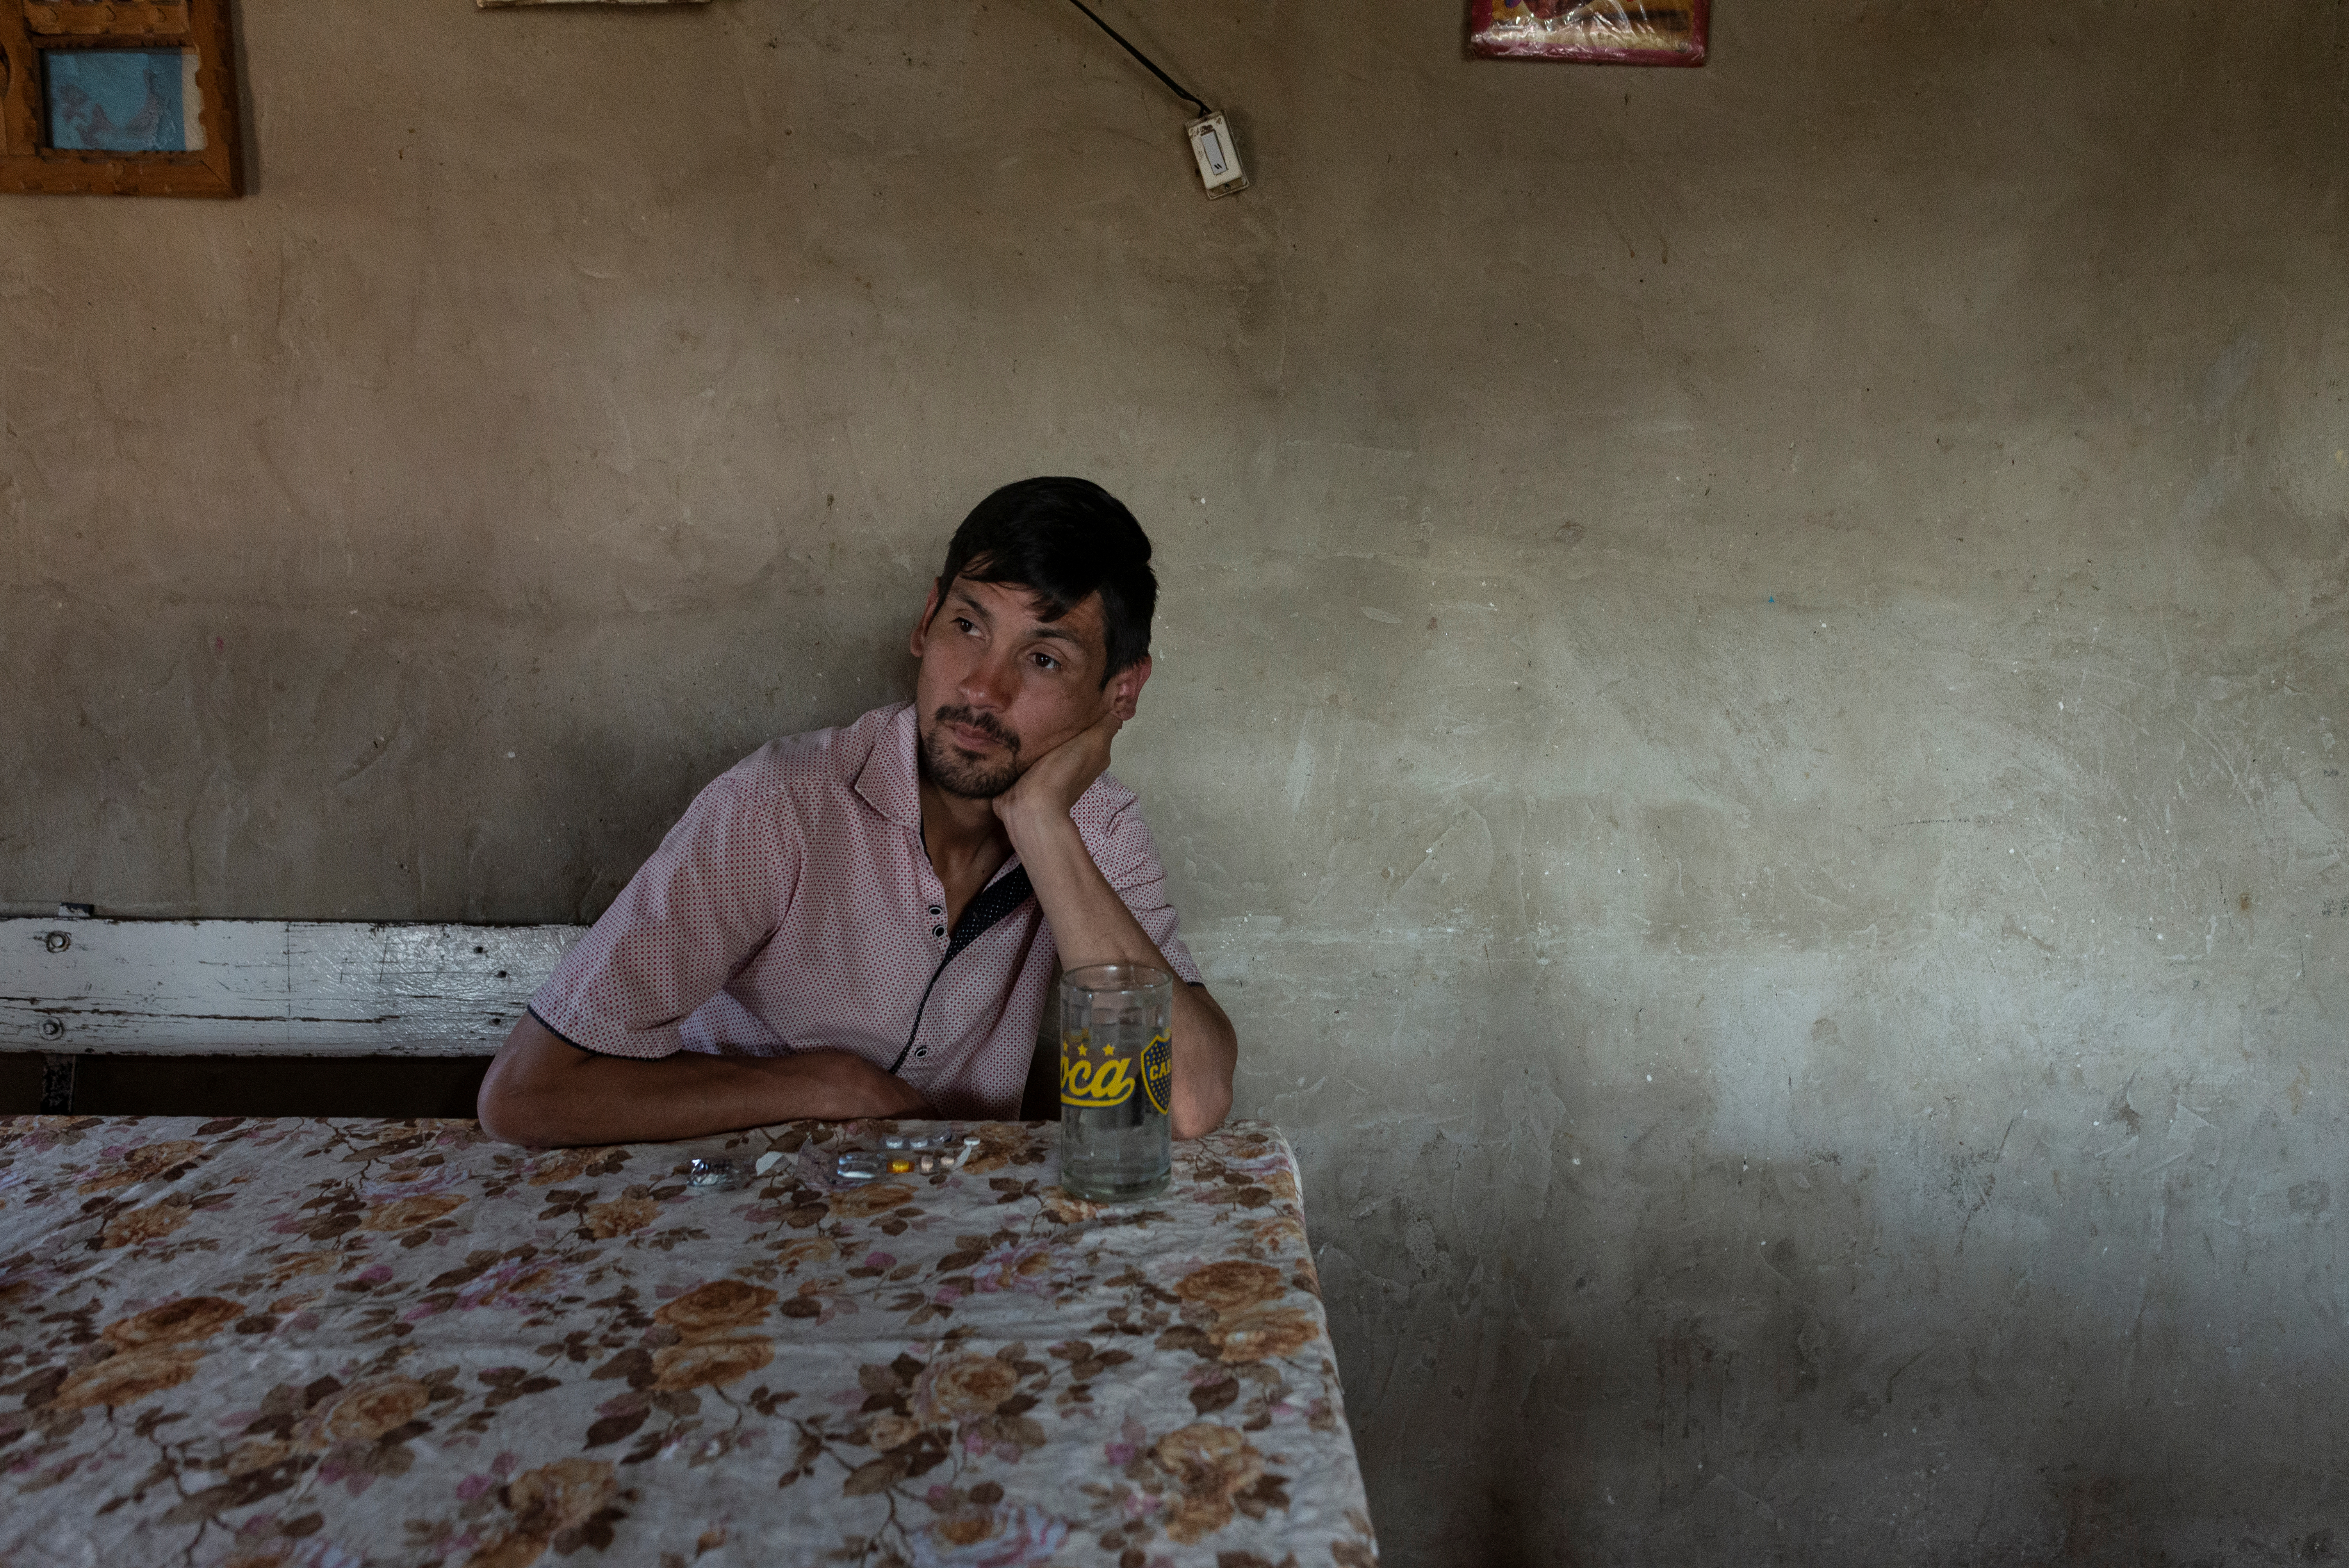 PHOTOS: White death in Argentina: The hunger of poverty feeds tuberculosis